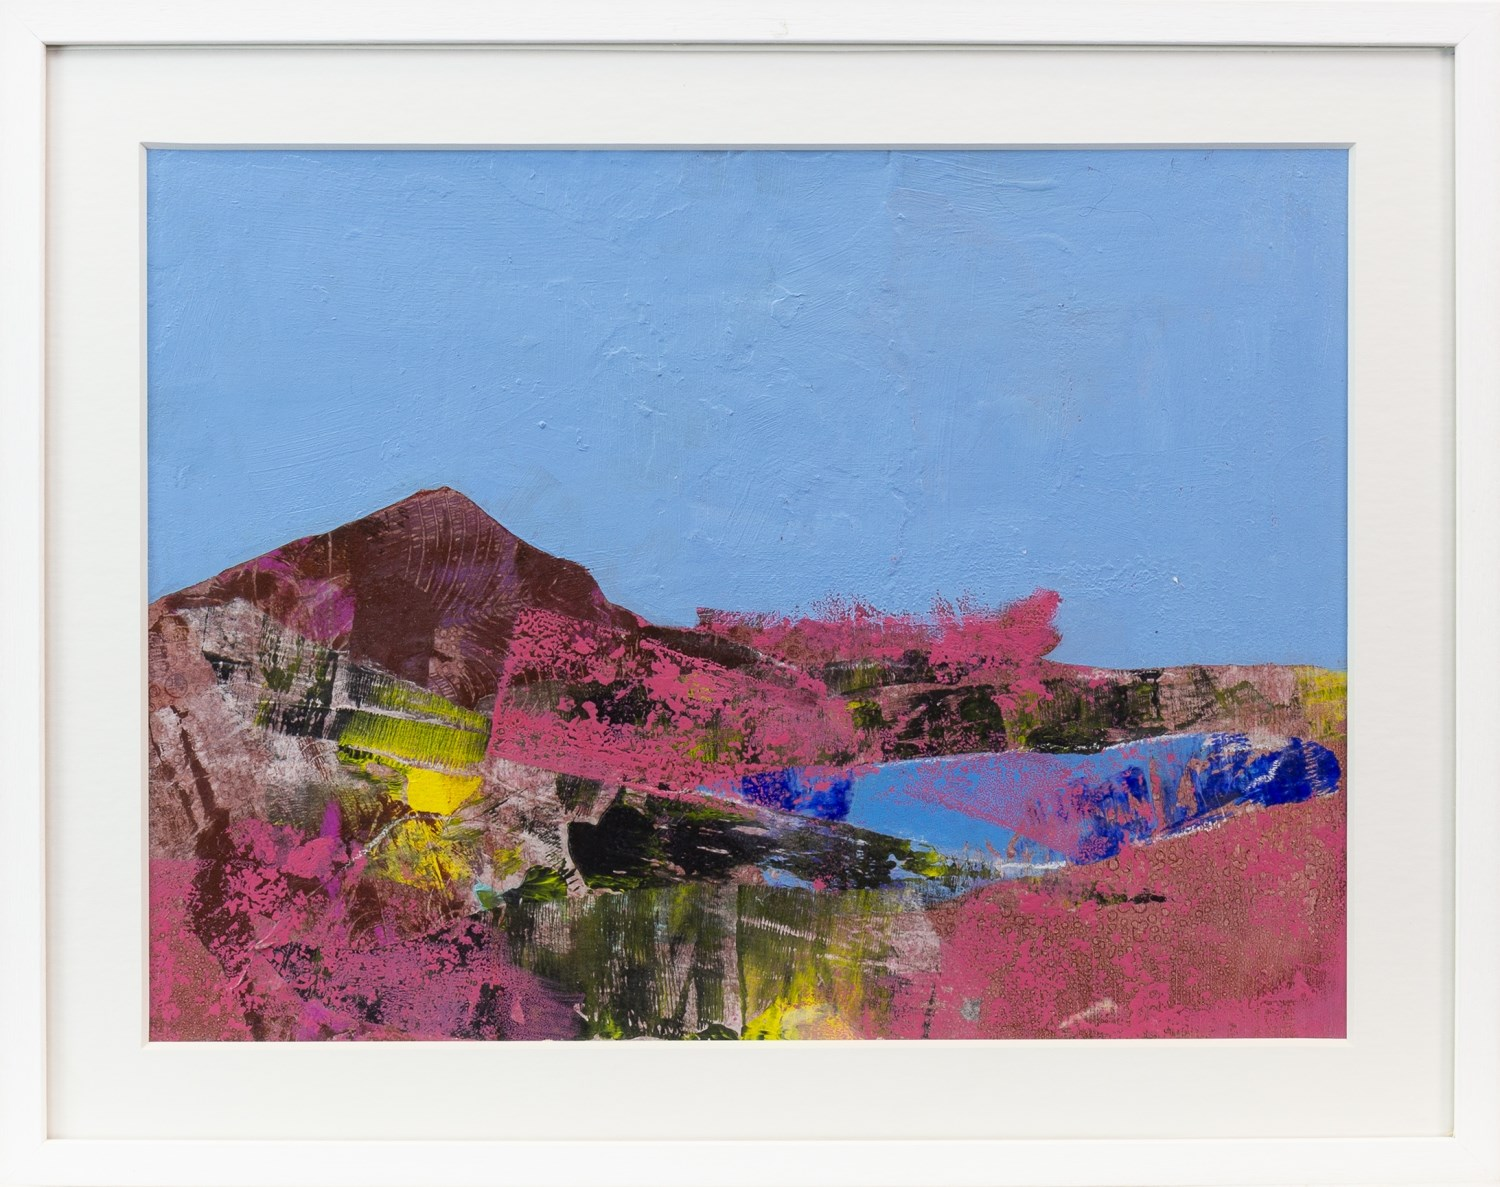 Lot 110 - ULLAPOOL MOOR, A MIXED MEDIA BY CHRISTOPHER BYRNE